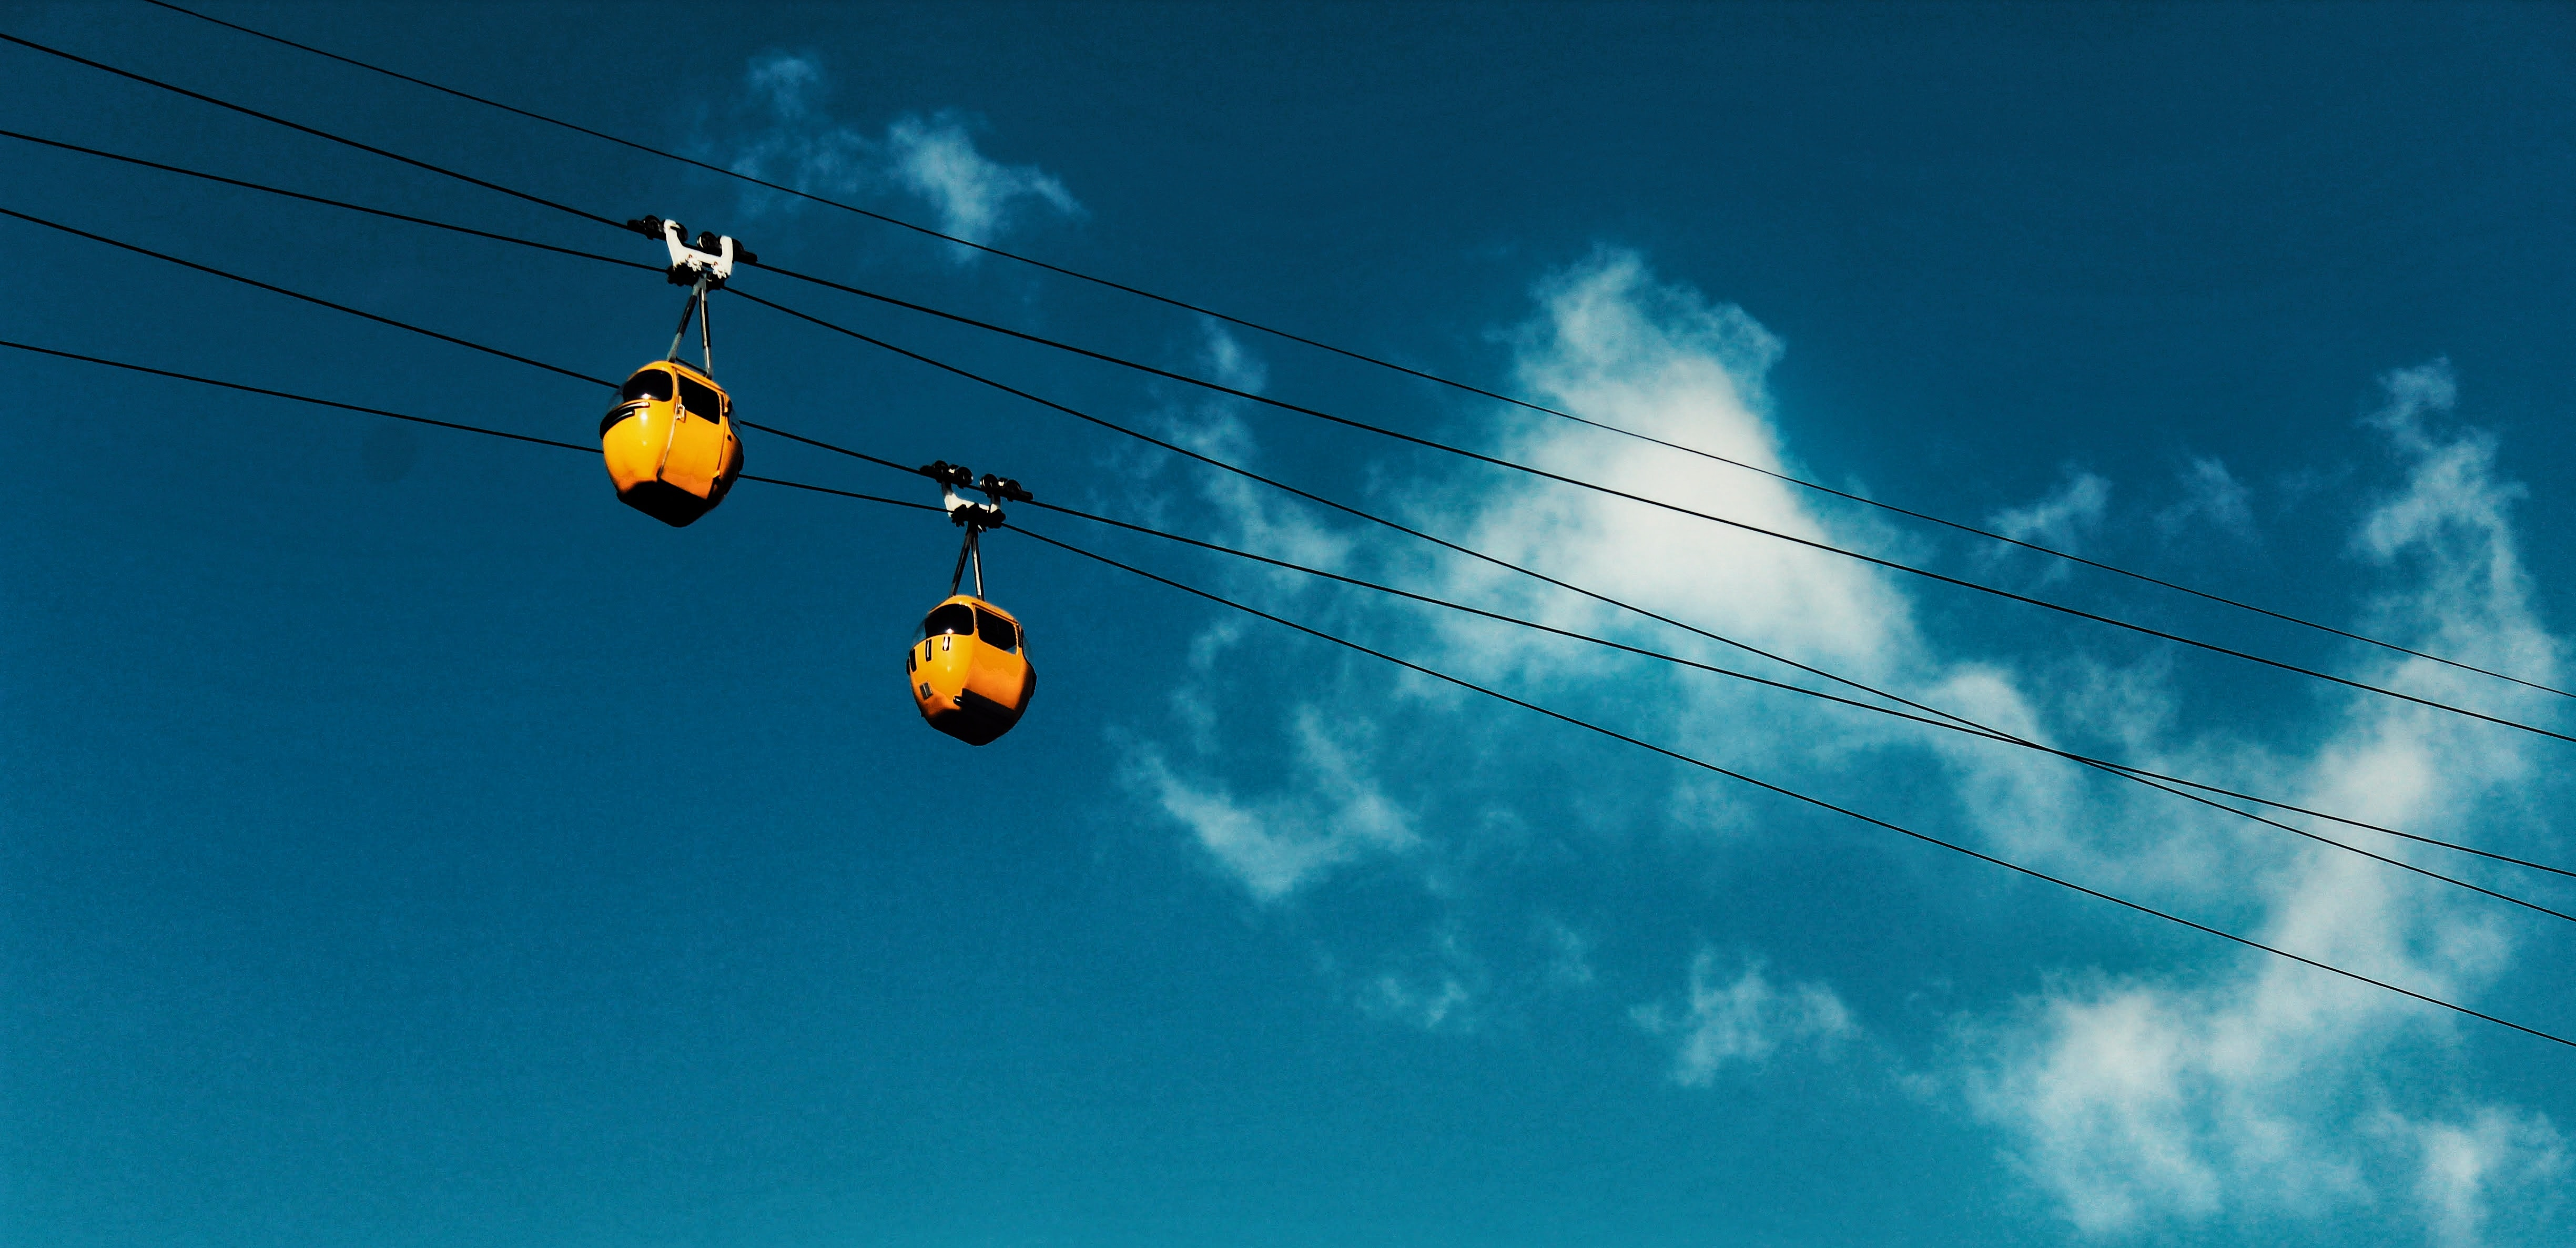 two yellow cable cars moving along a cable during day time